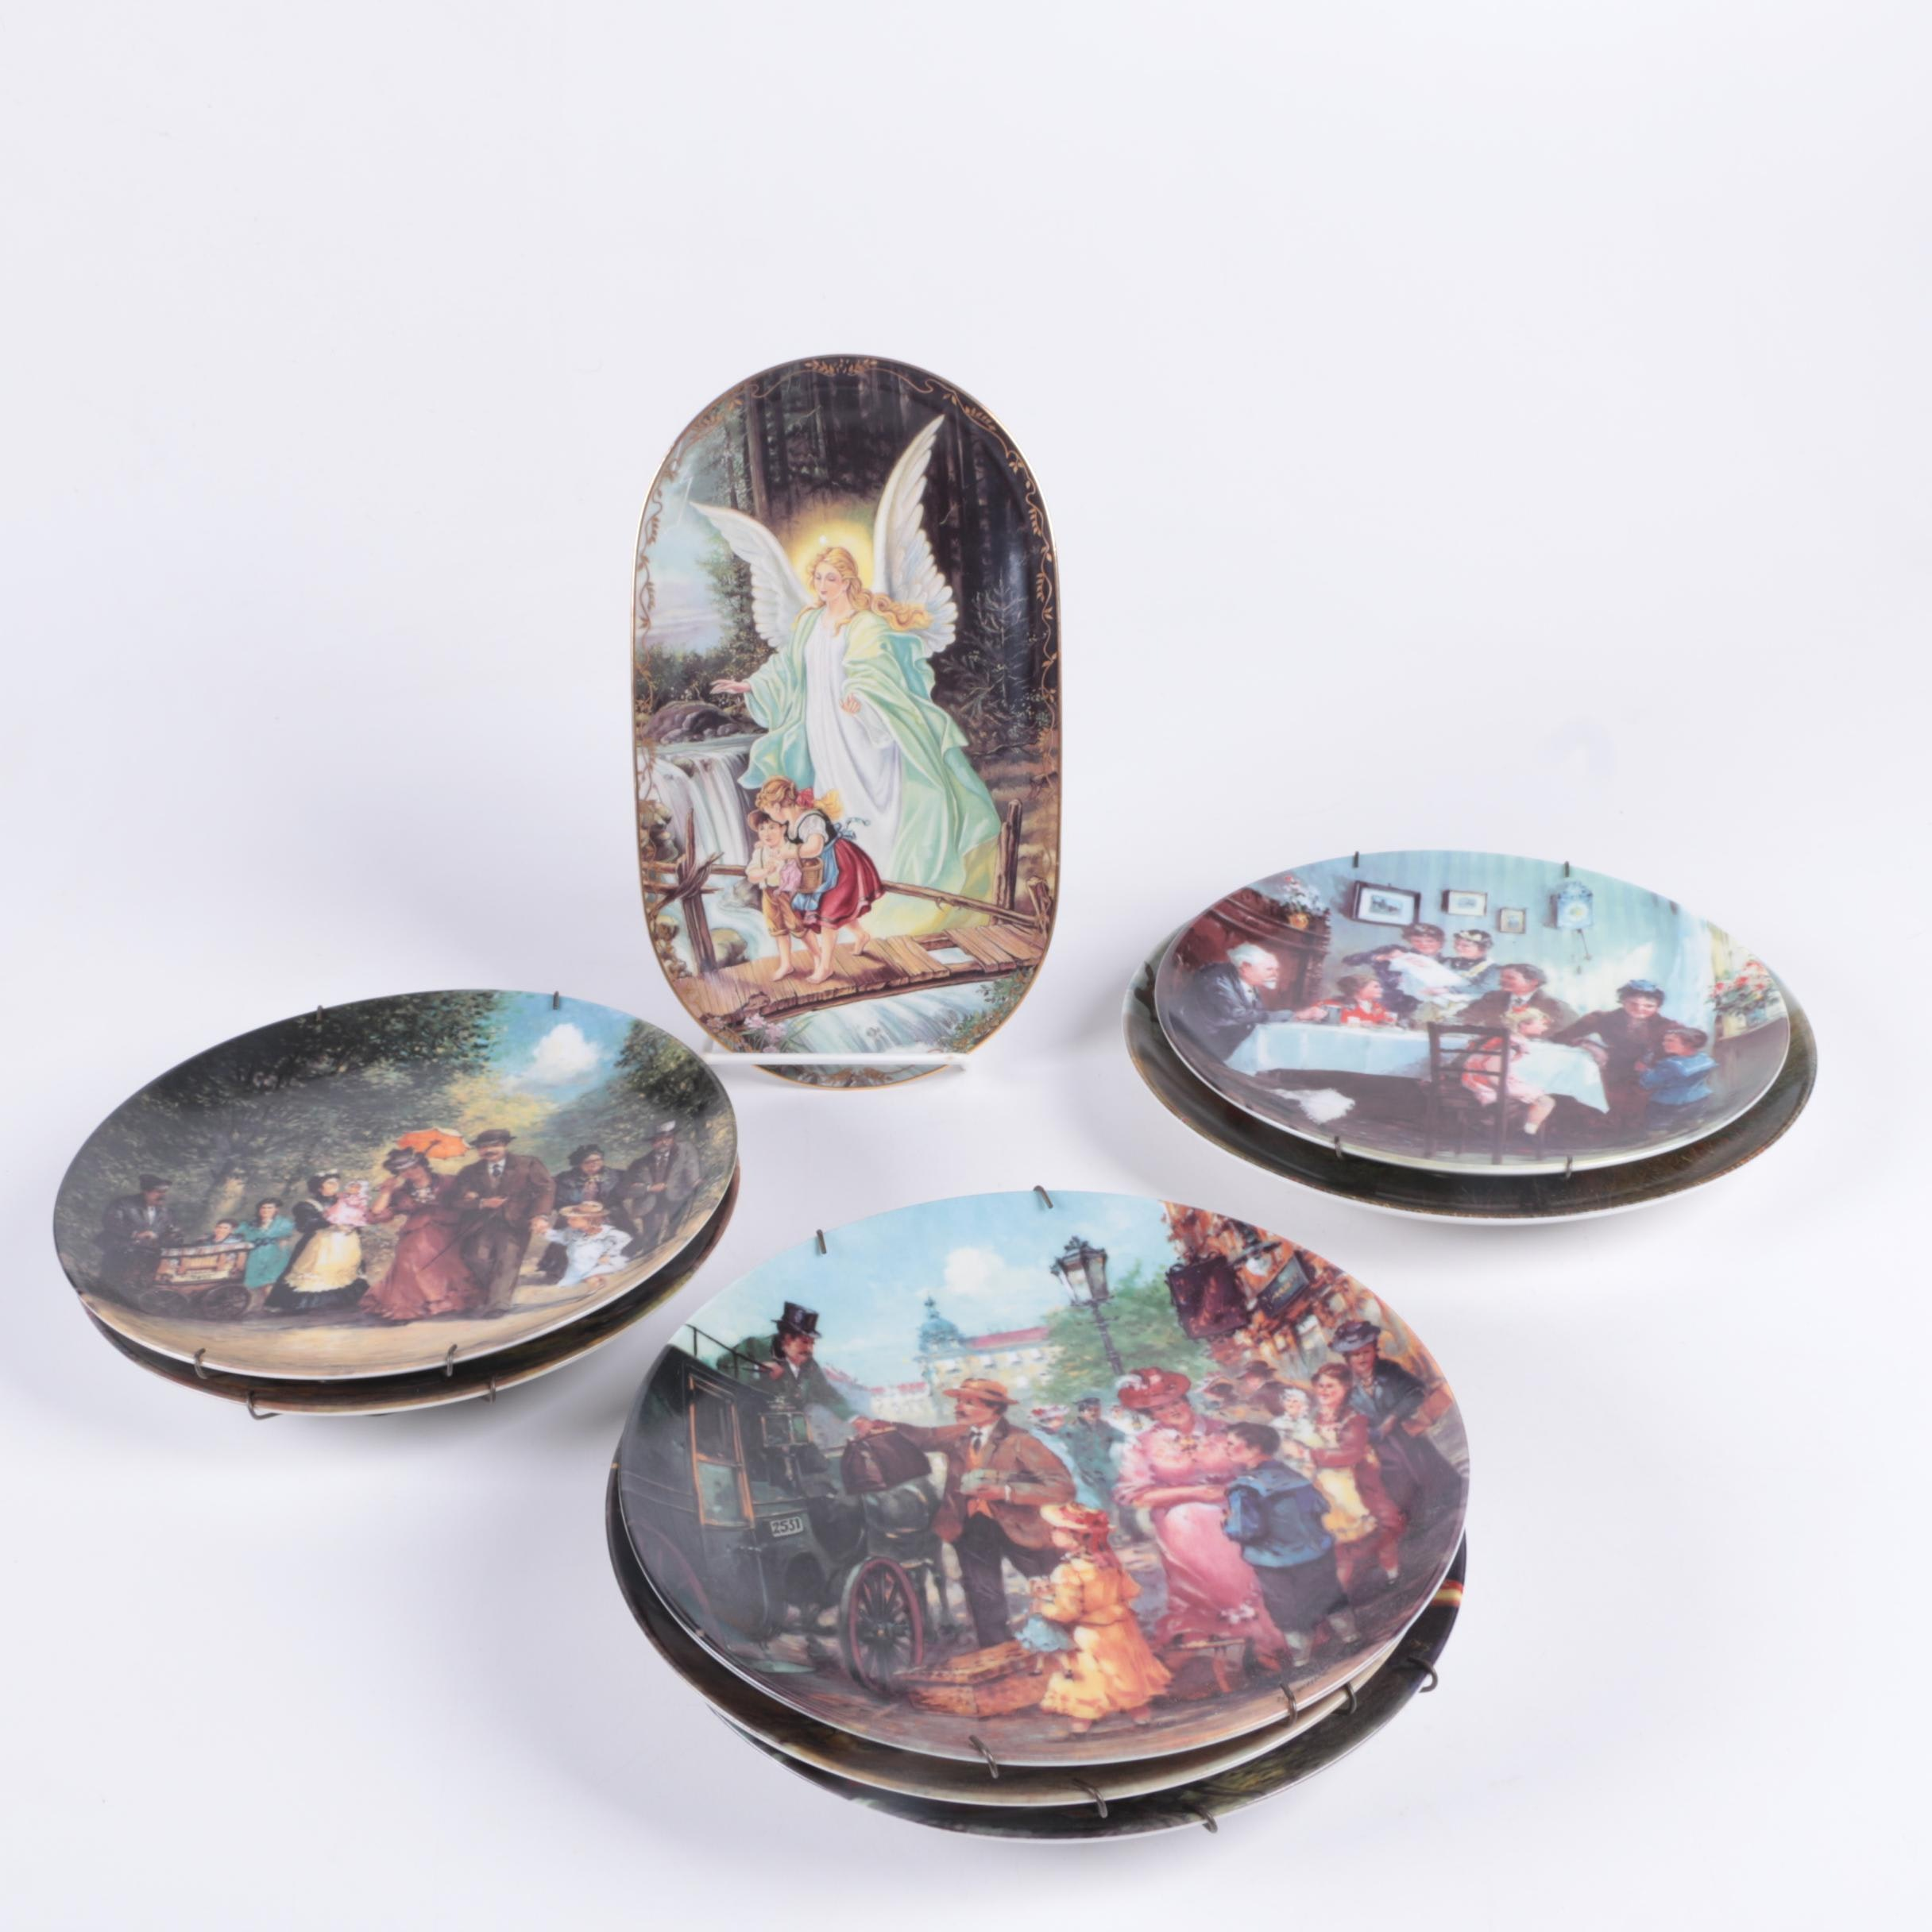 Decorative Porcelain Collectors' Plates